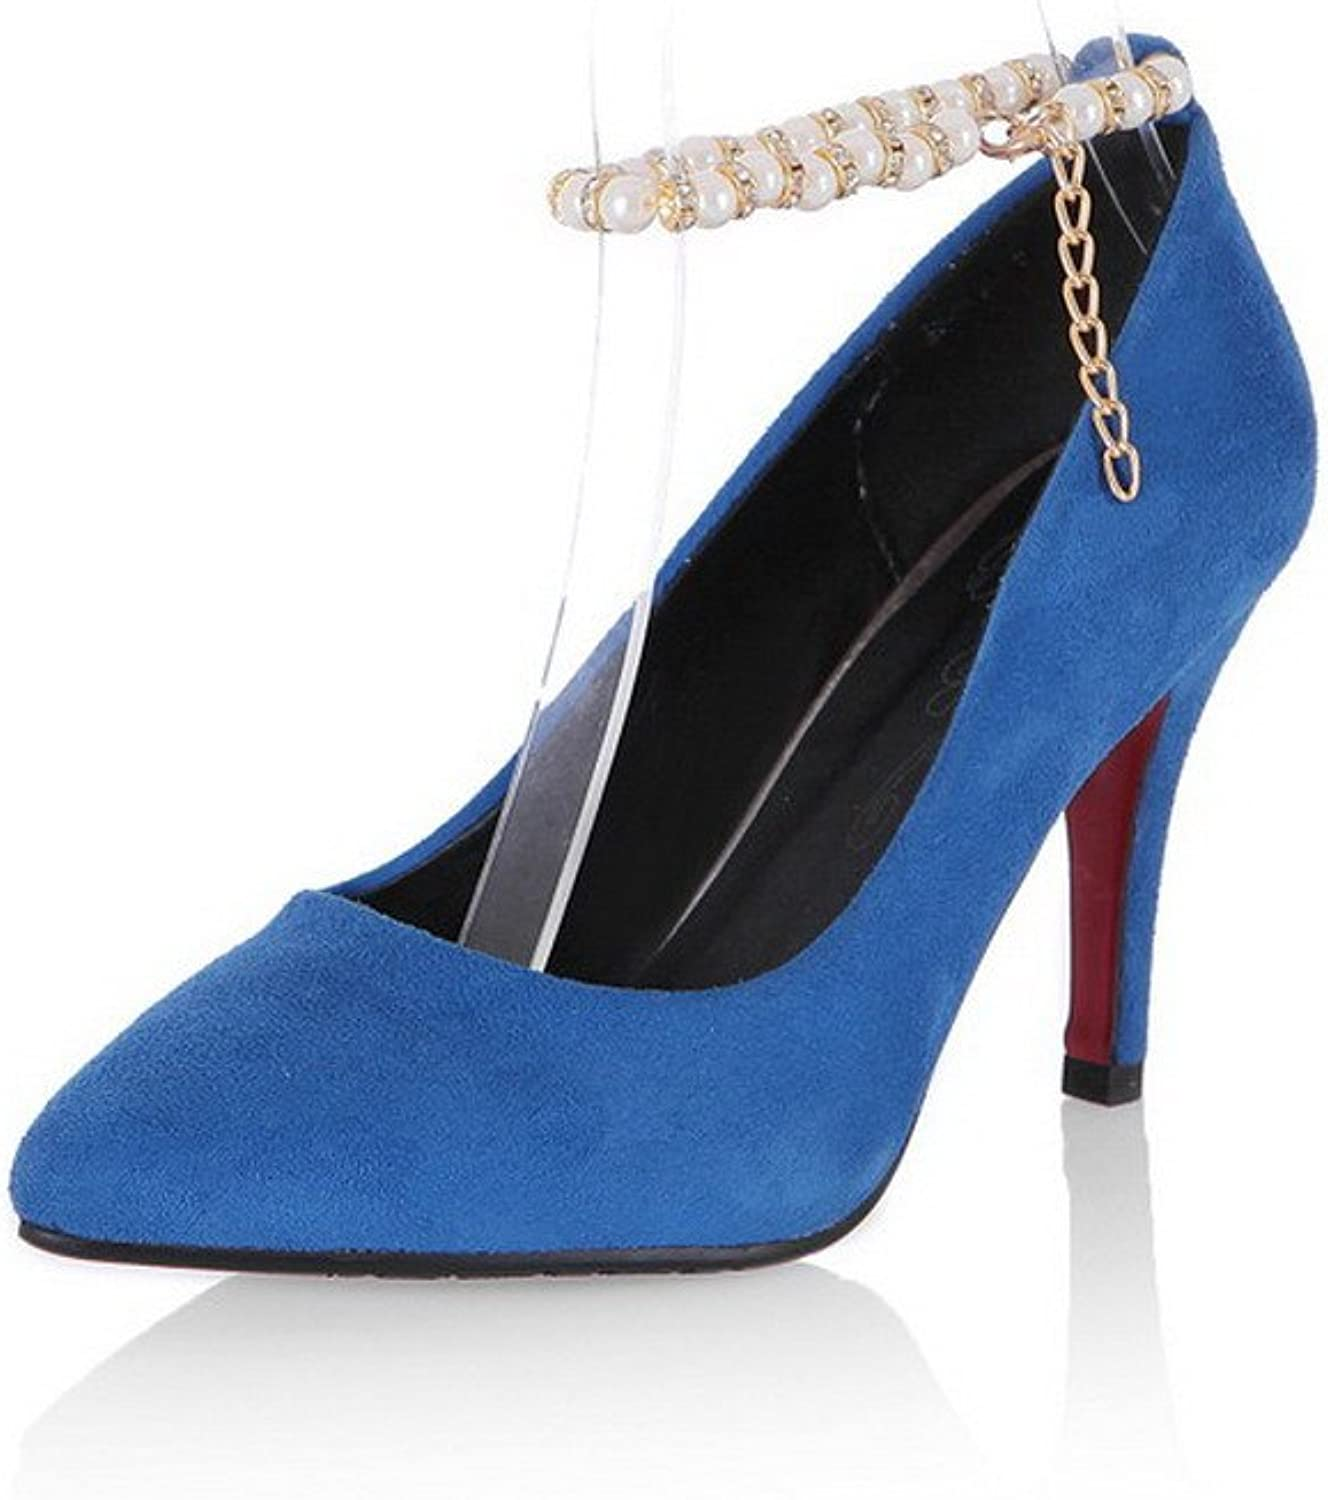 AllhqFashion Women's High-Heels Solid Buckle Pointed-Toe Pumps-shoes